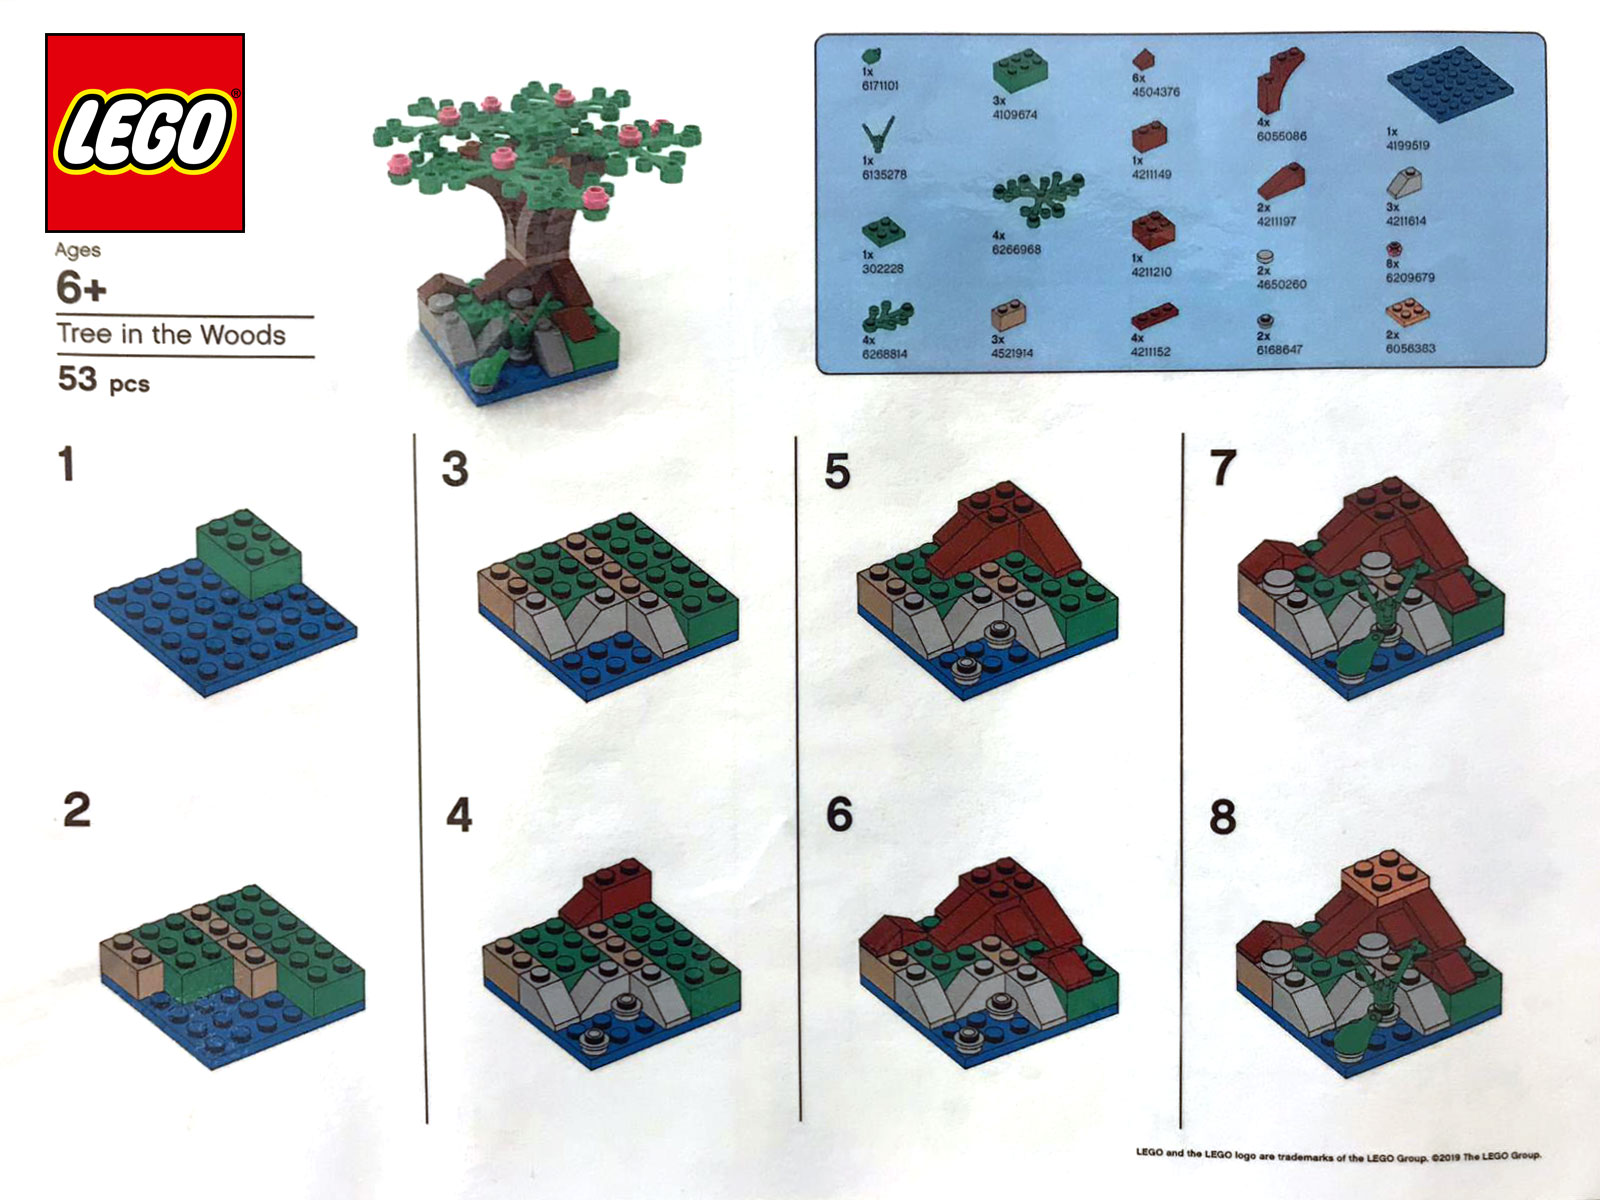 lego-tree-in-the-woods-instructions-01